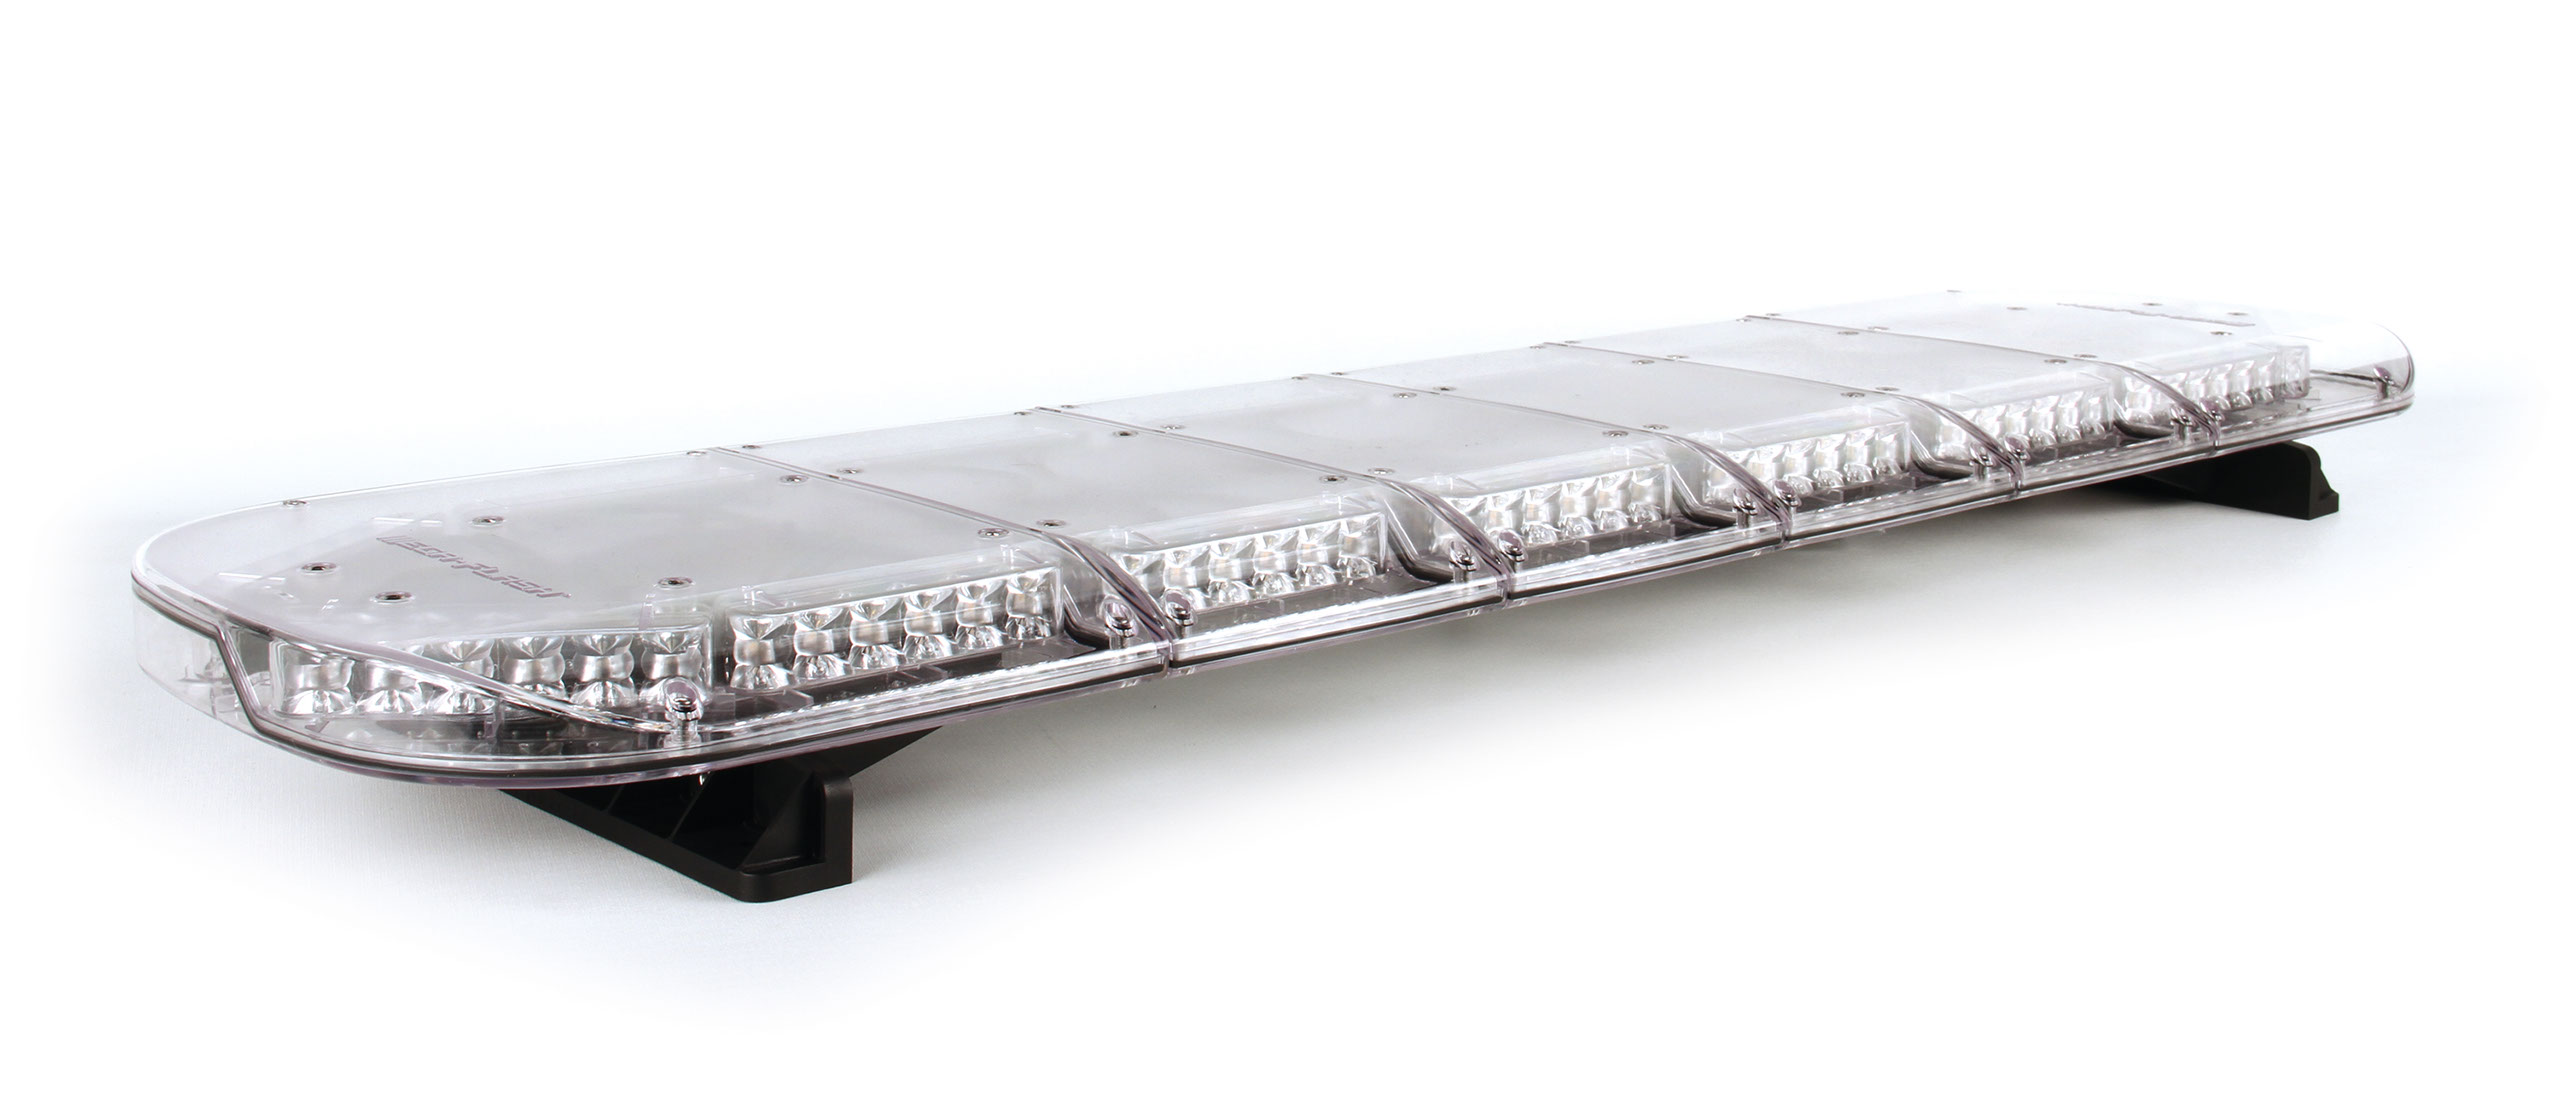 "Redtronic Mega Flash  34.5"" BULLITT Light Bar - BL288/388"